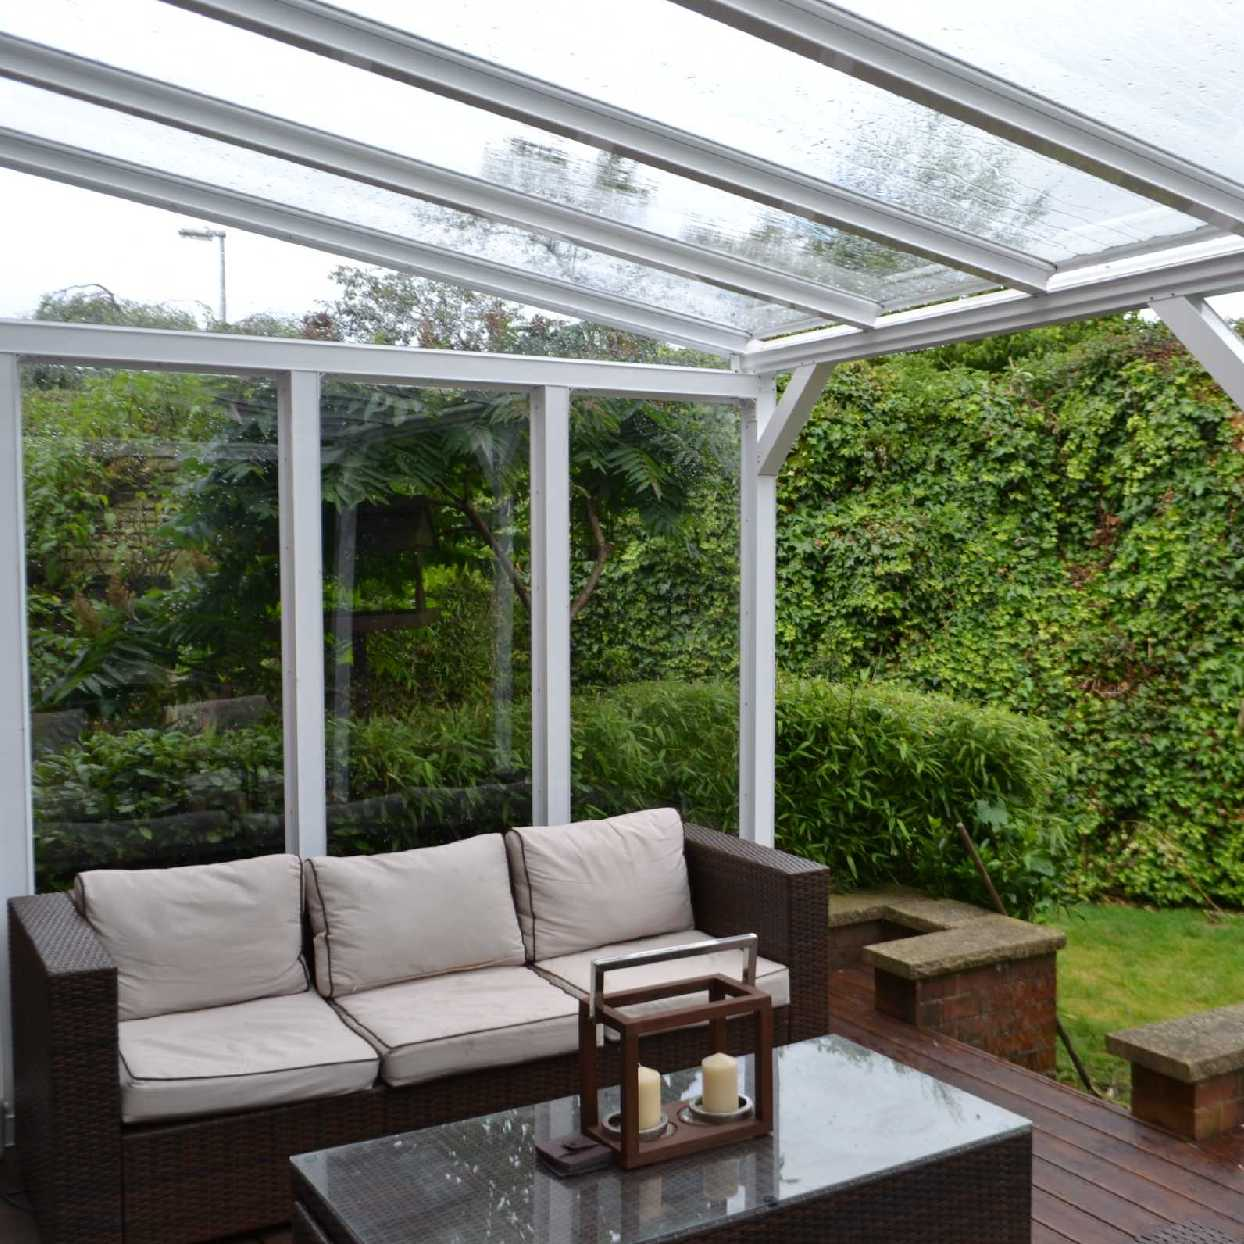 Omega Smart White Lean-To Canopy UNGLAZED for 6mm Glazing - 7.7m (W) x 1.5m (P), (4) Supporting Posts